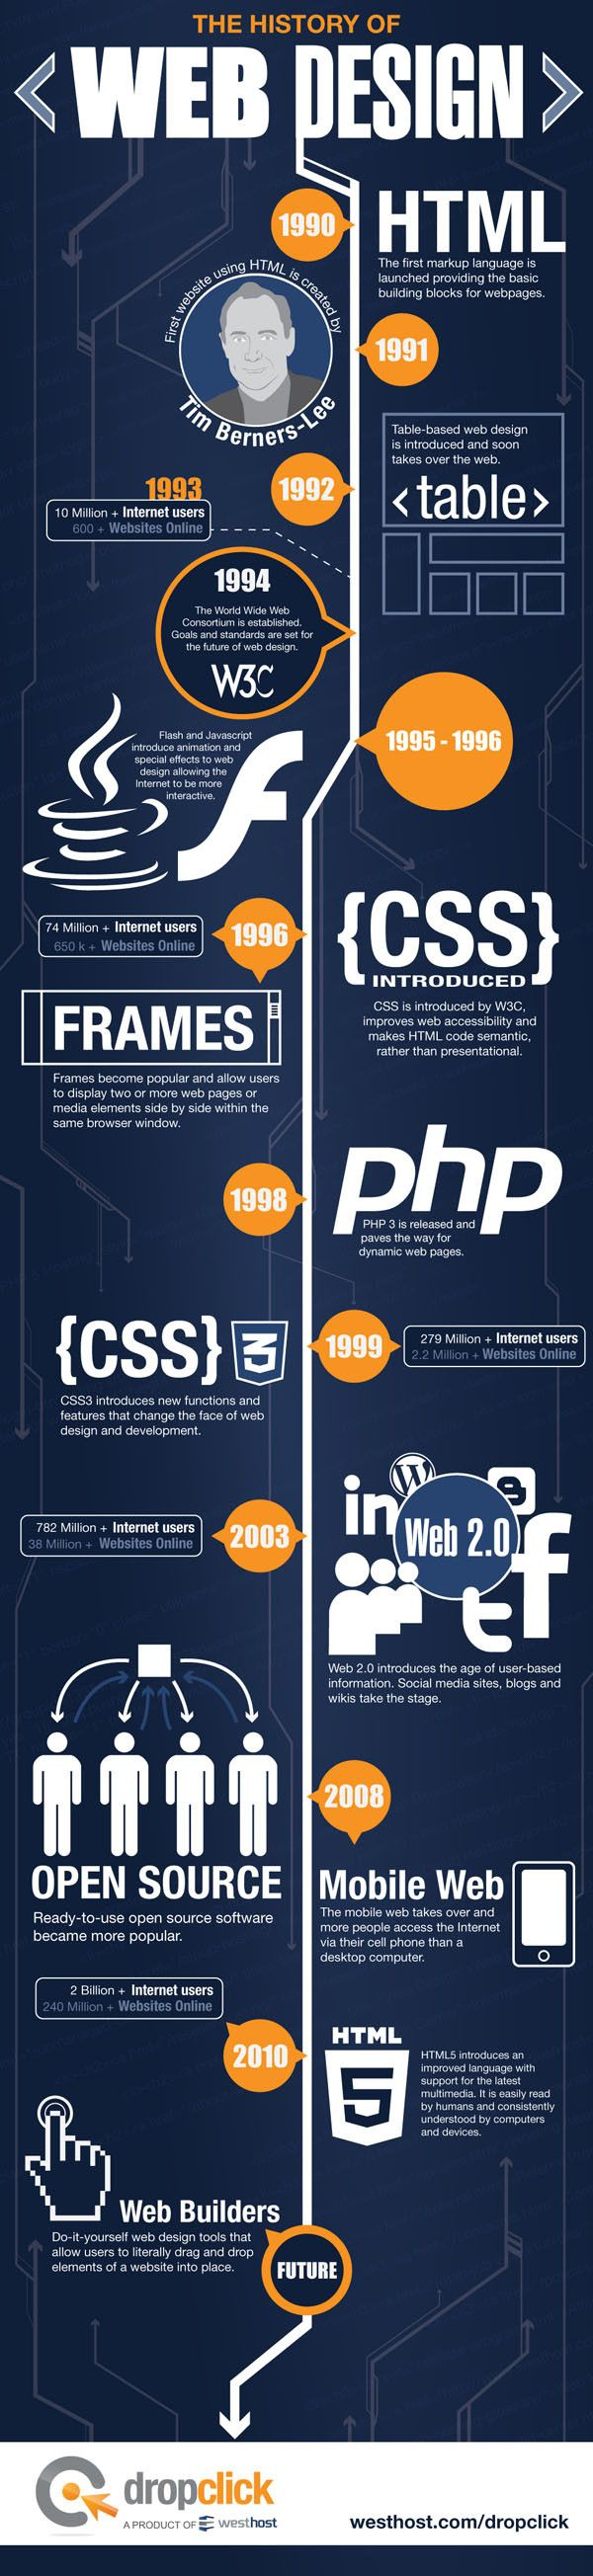 The History Of Web Design #infographic